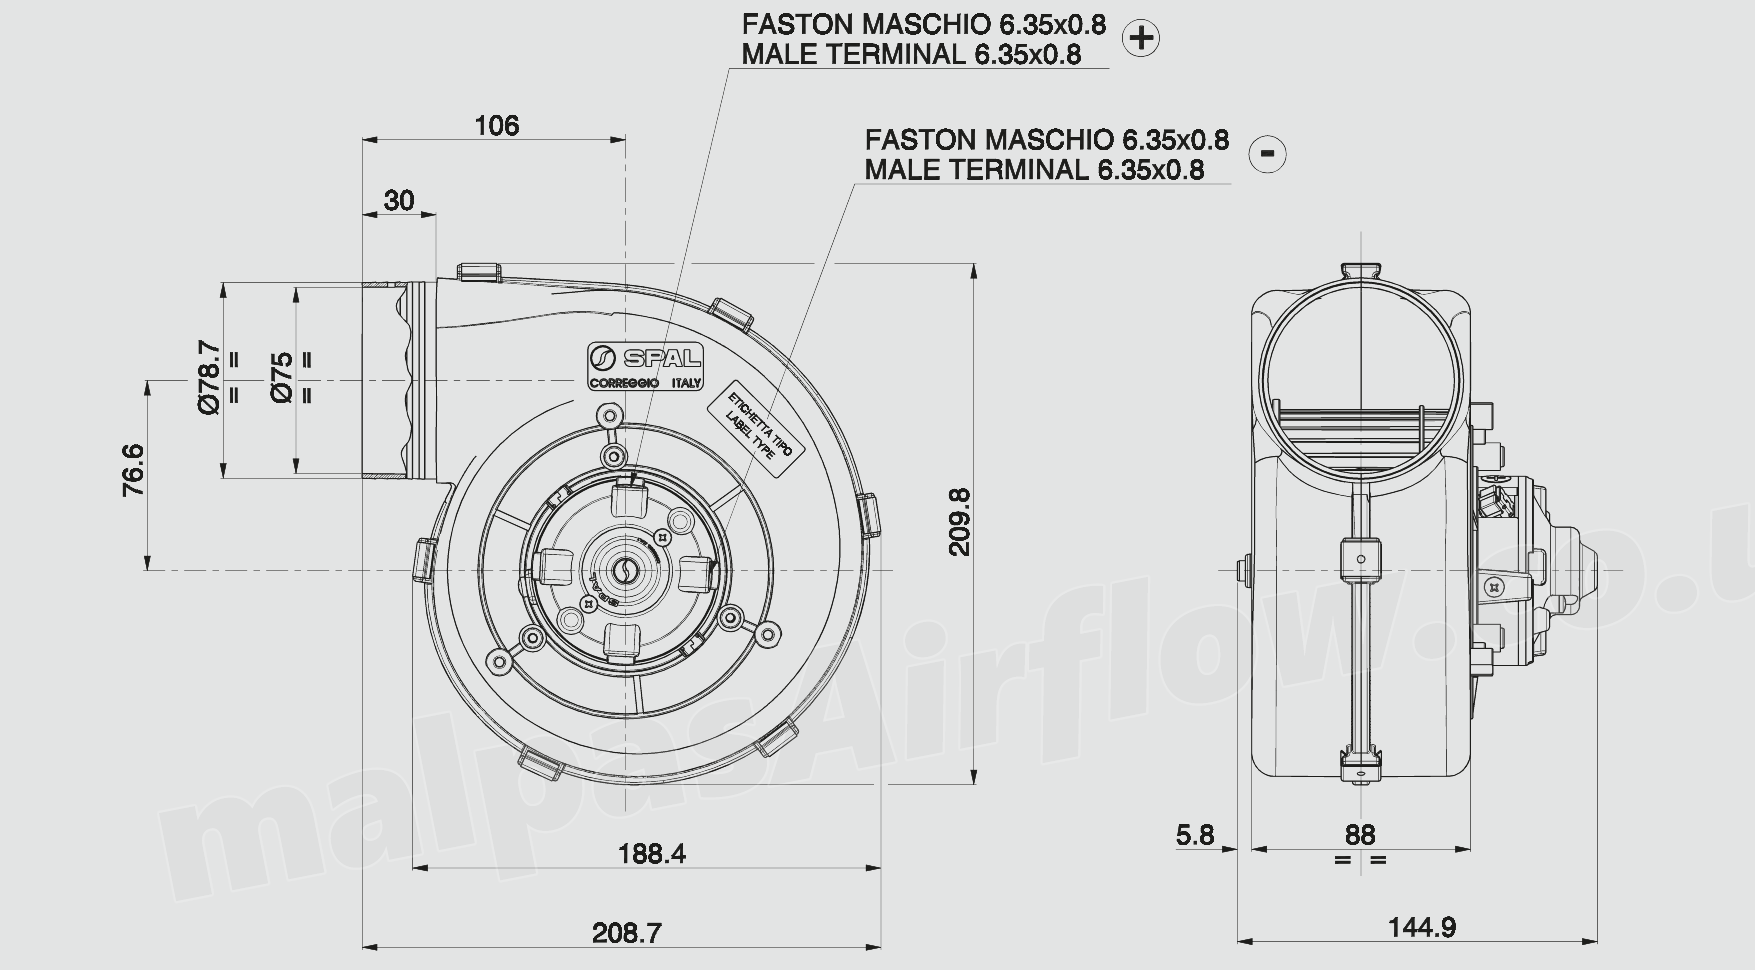 30001023 Spal 348 Cfm Single Blower 001 A39 49d 12v Speed 106 Wiring Diagram Fans Dimensions Of